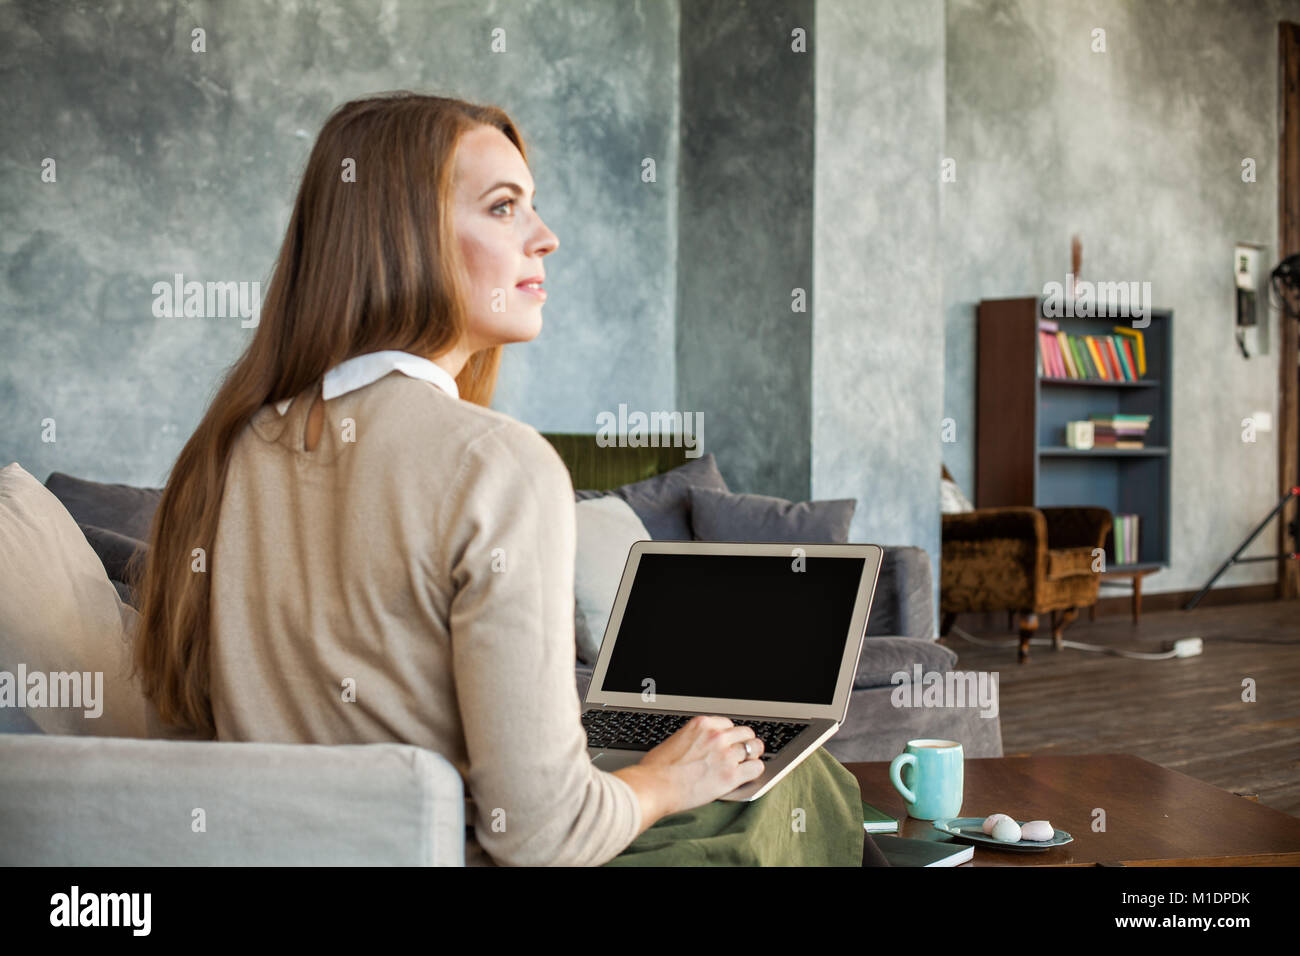 Screen of Laptop on Blurred Woman and Interior Background - Stock Image